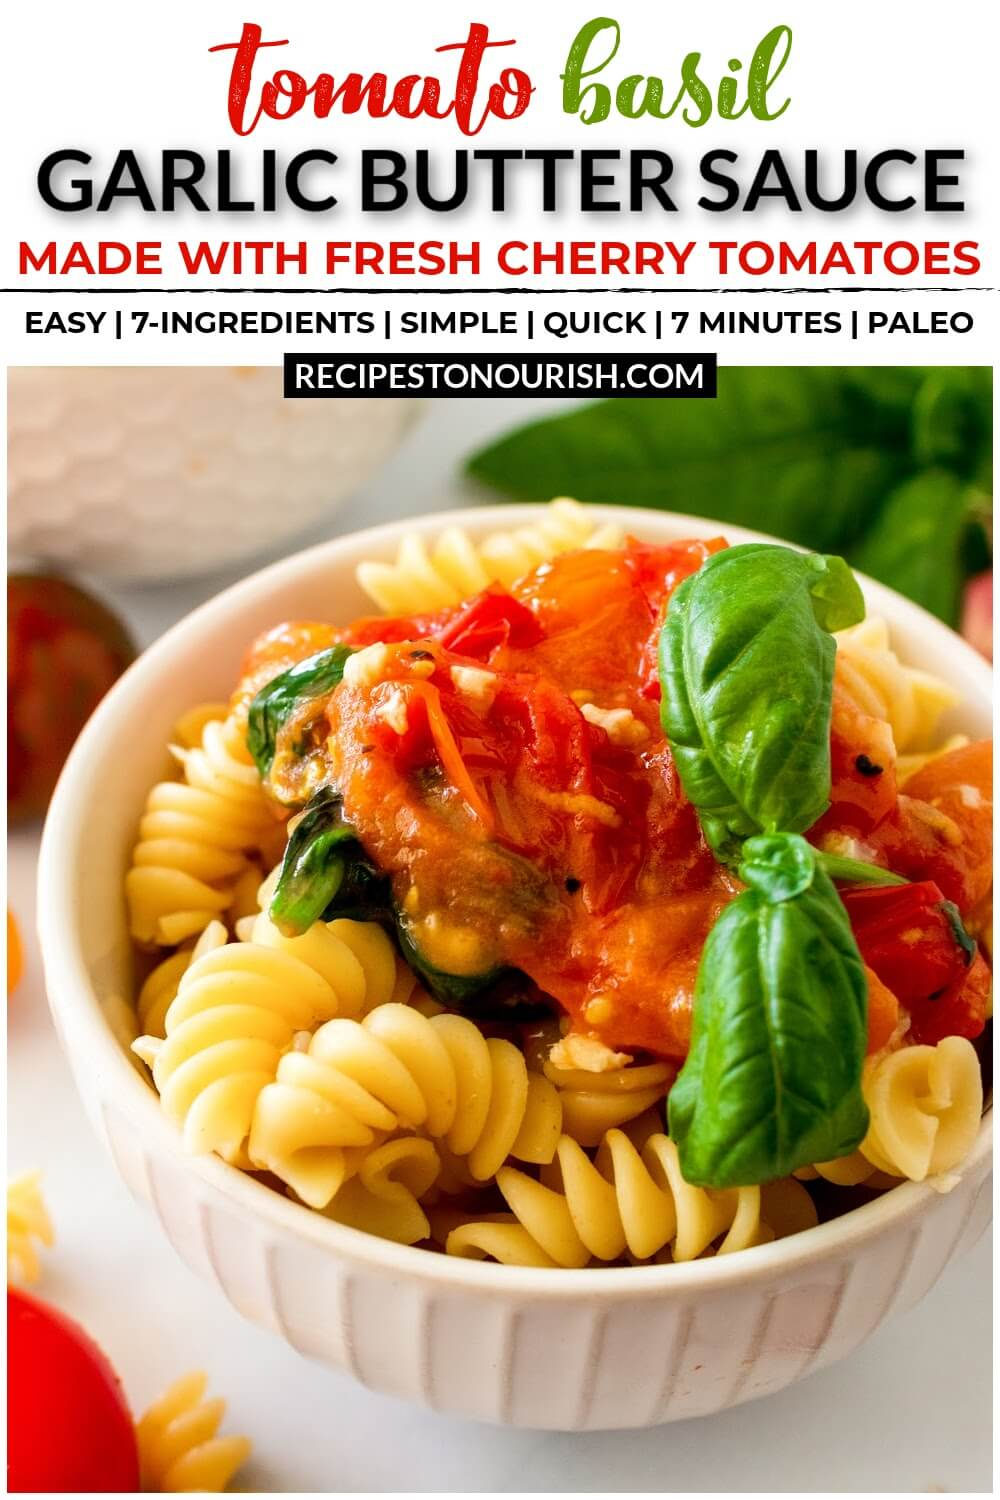 Bowl full of pasta topped with homemade tomato basil sauce with a sprig of fresh basil.